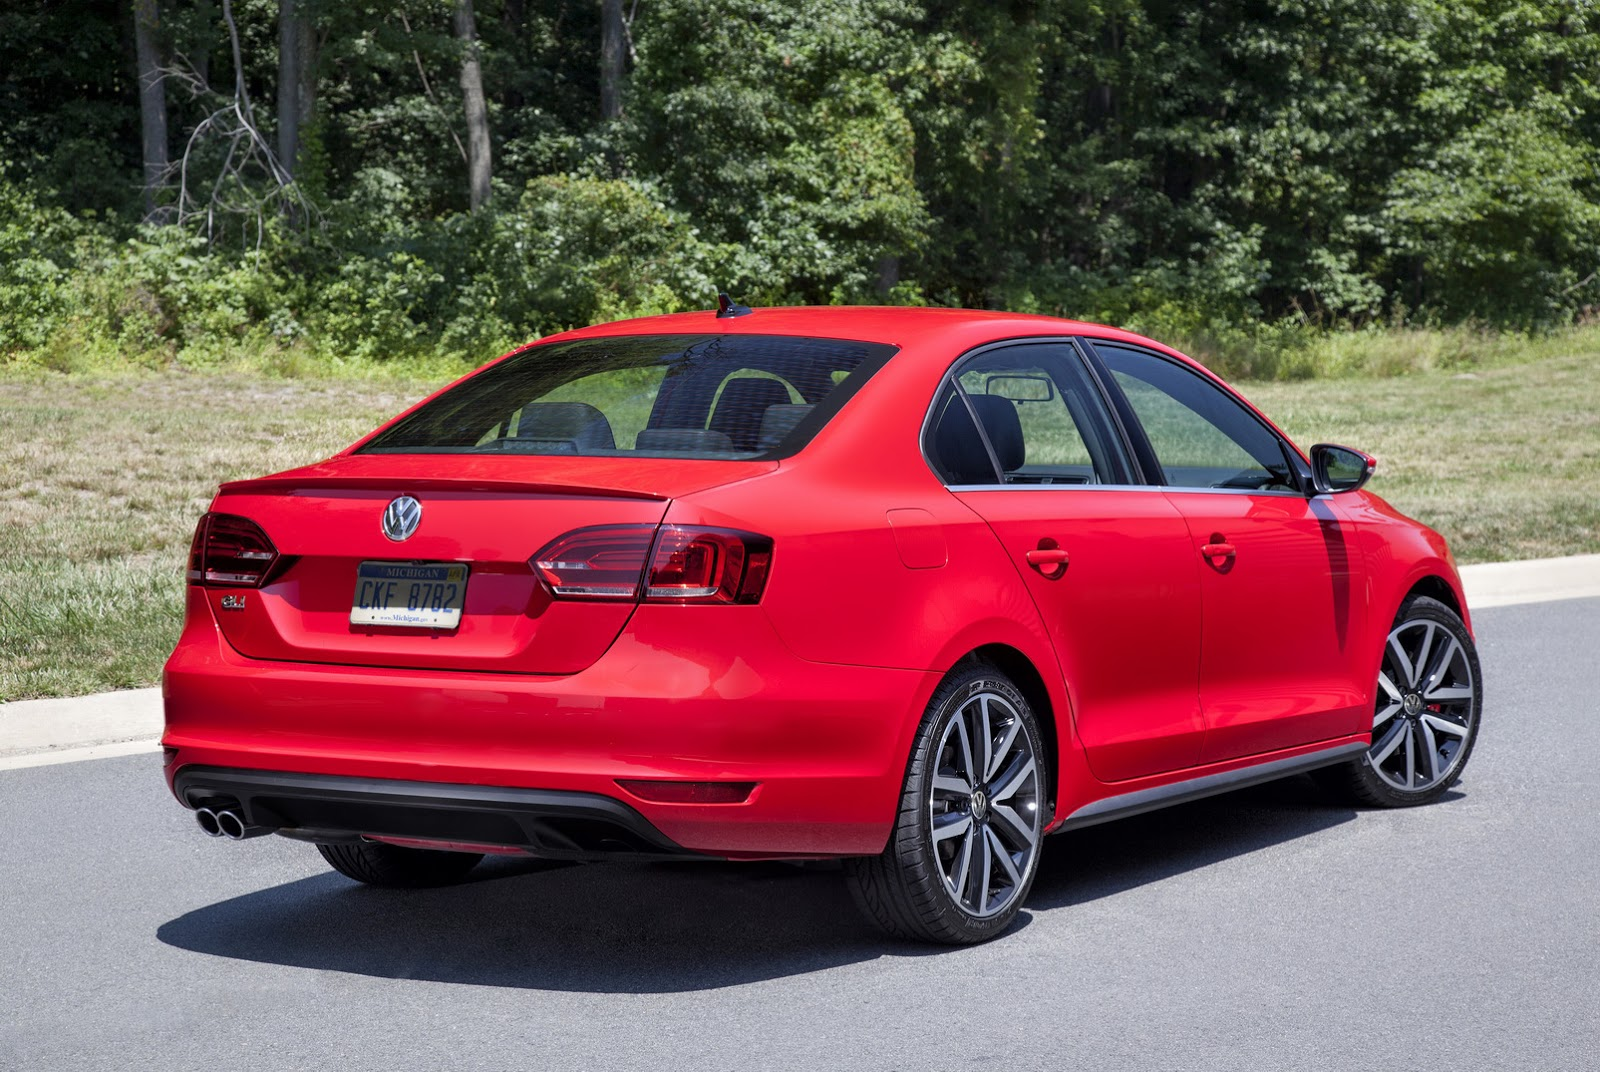 2016 vw jetta gli gets a subtle facelift retains golf gti 39 s 210hp turbo carscoops. Black Bedroom Furniture Sets. Home Design Ideas